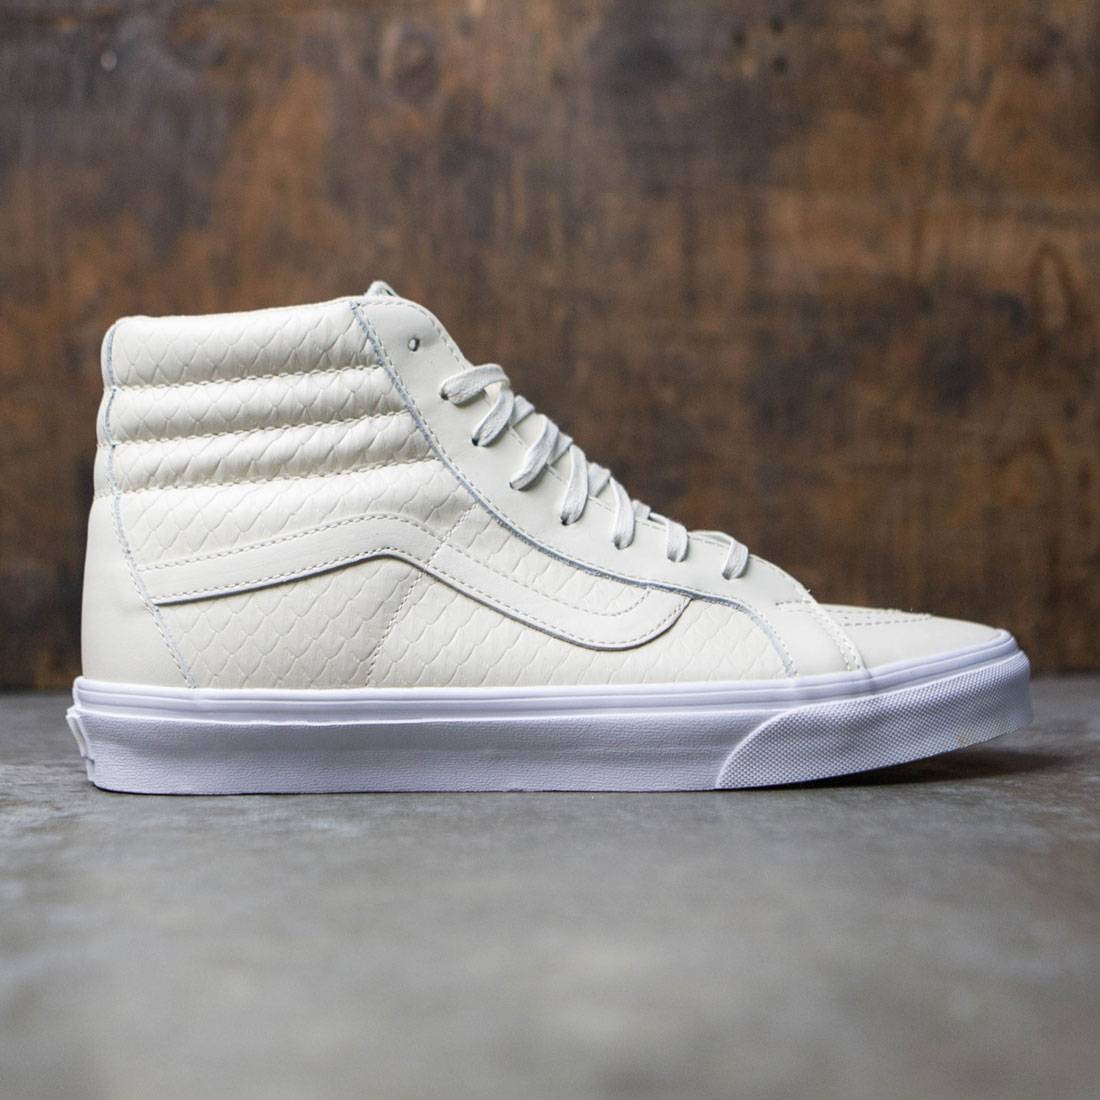 3cdfef68be1f Vans Men Sk8-Hi Reissue DX - Armor Leather white / turtledove